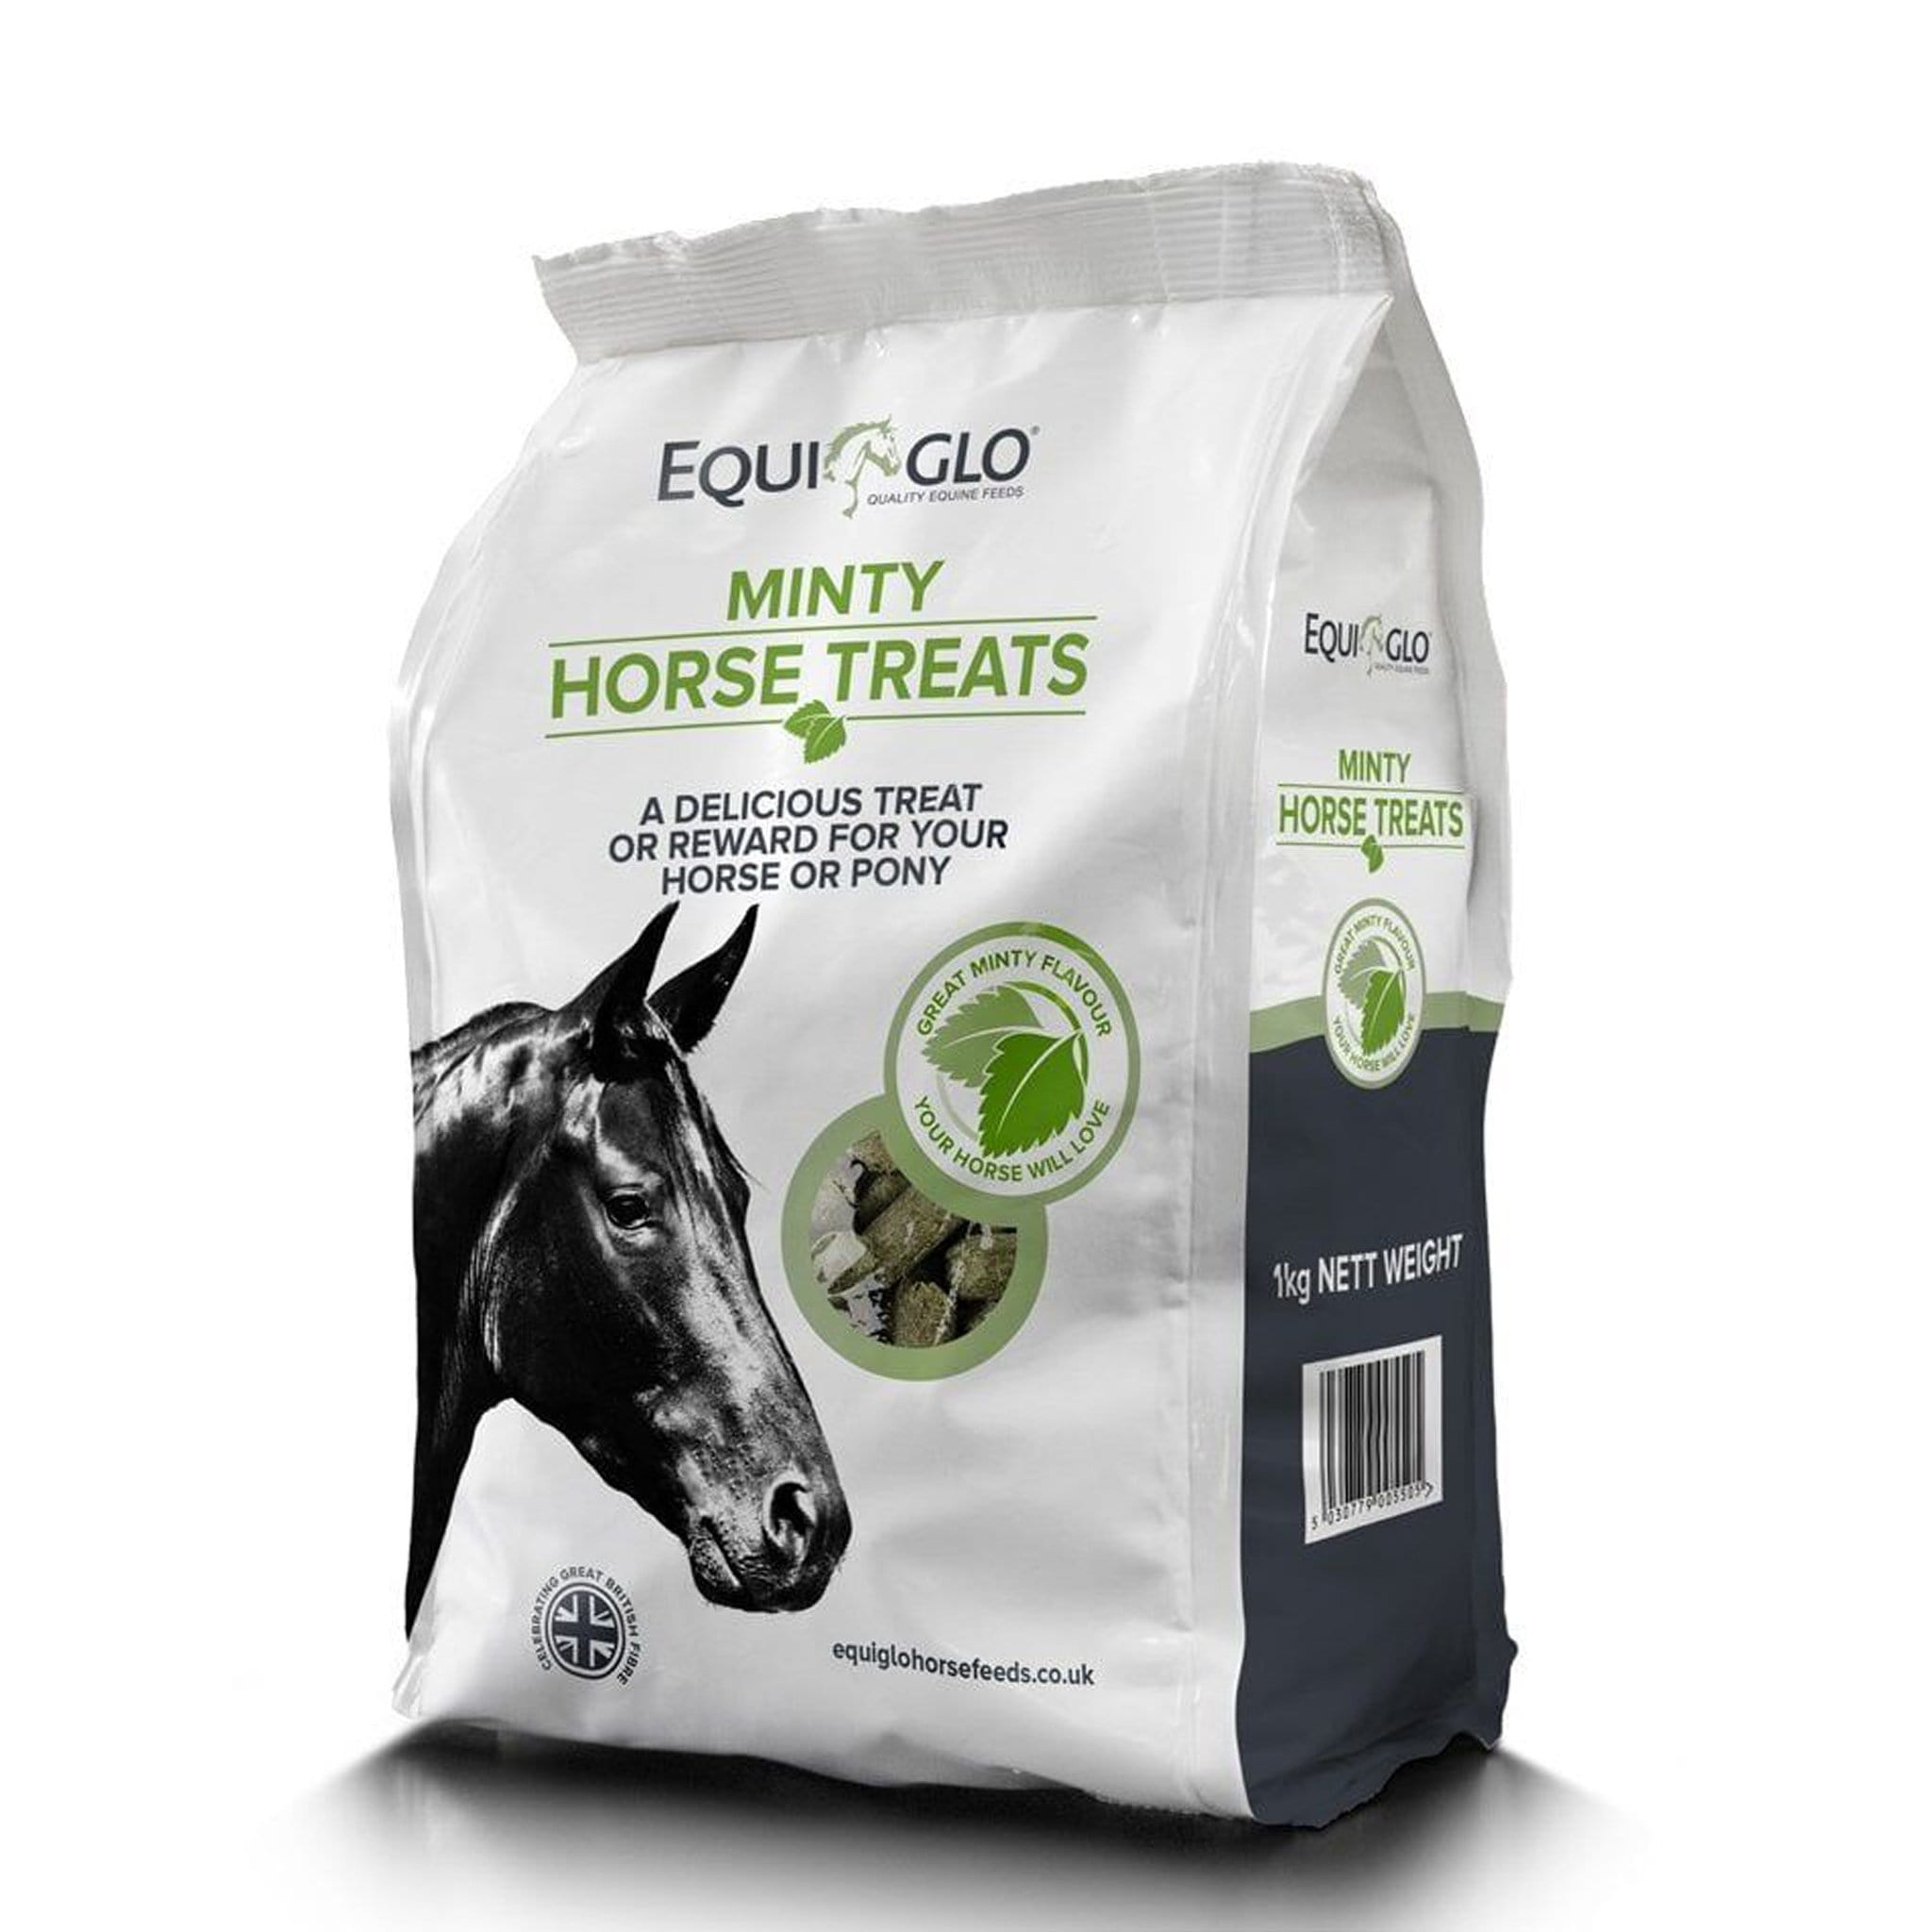 Mr Johnson's Equiglo Minty Horse Treats